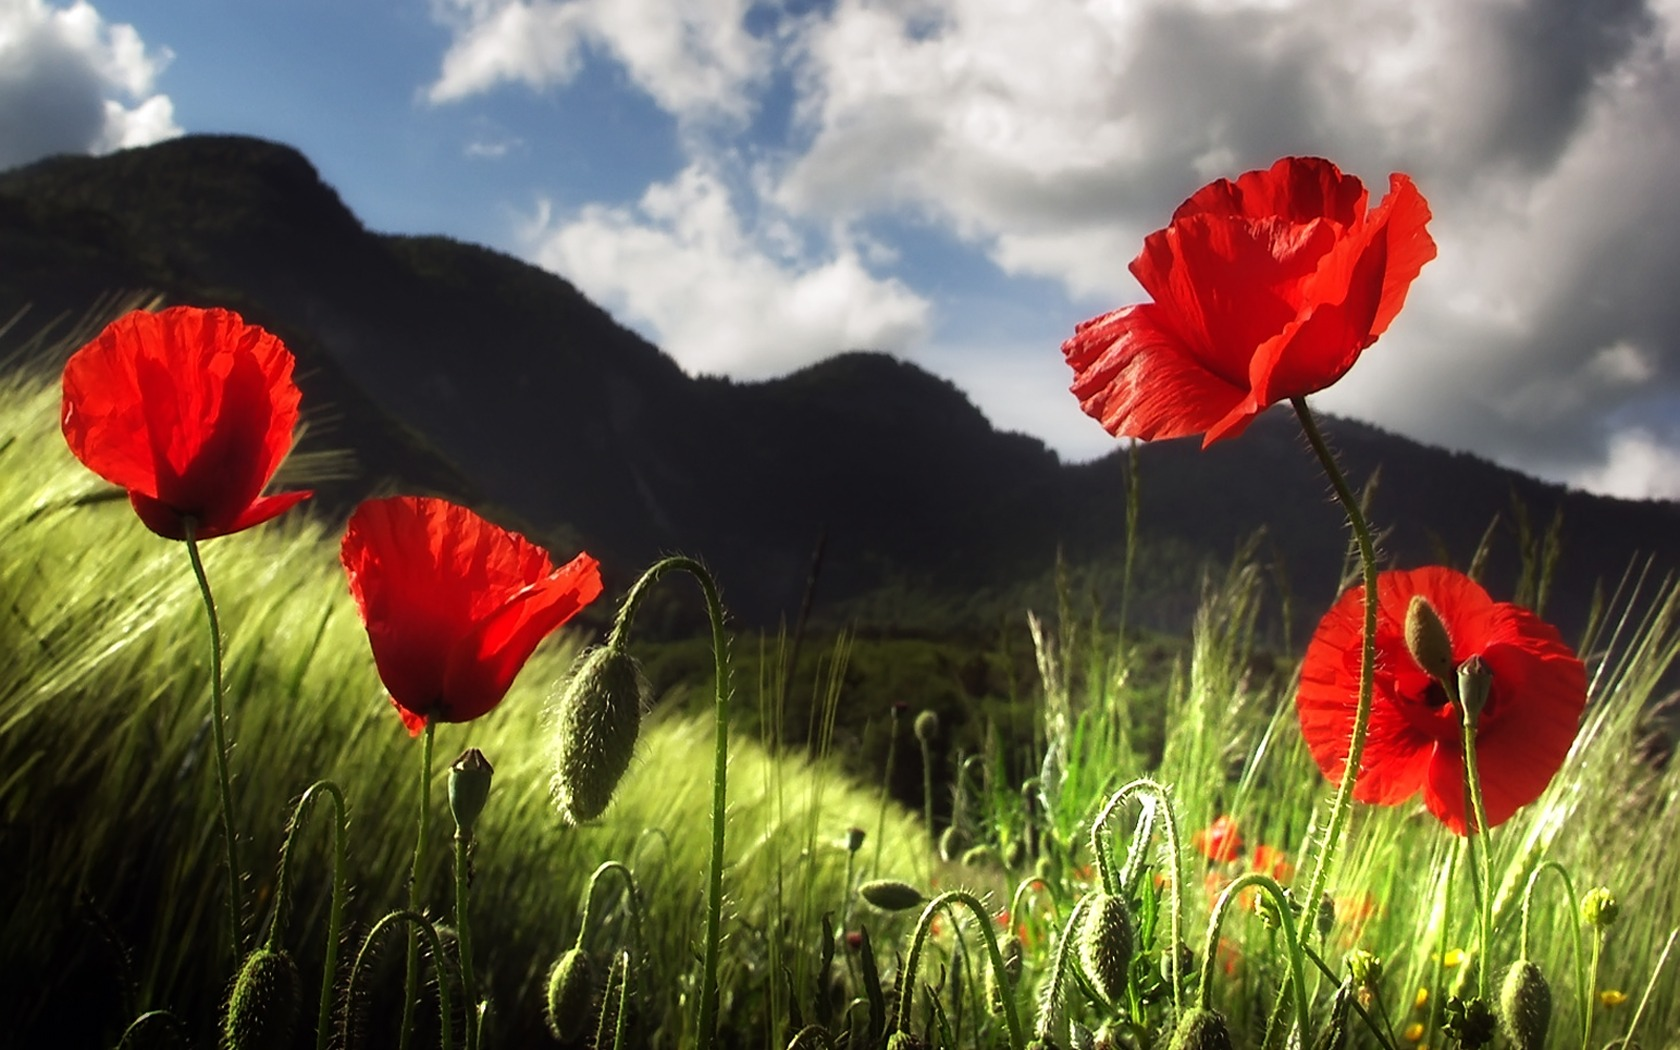 Poppy Wallpaper Flowers Nature Wallpapers In Jpg Format For Free